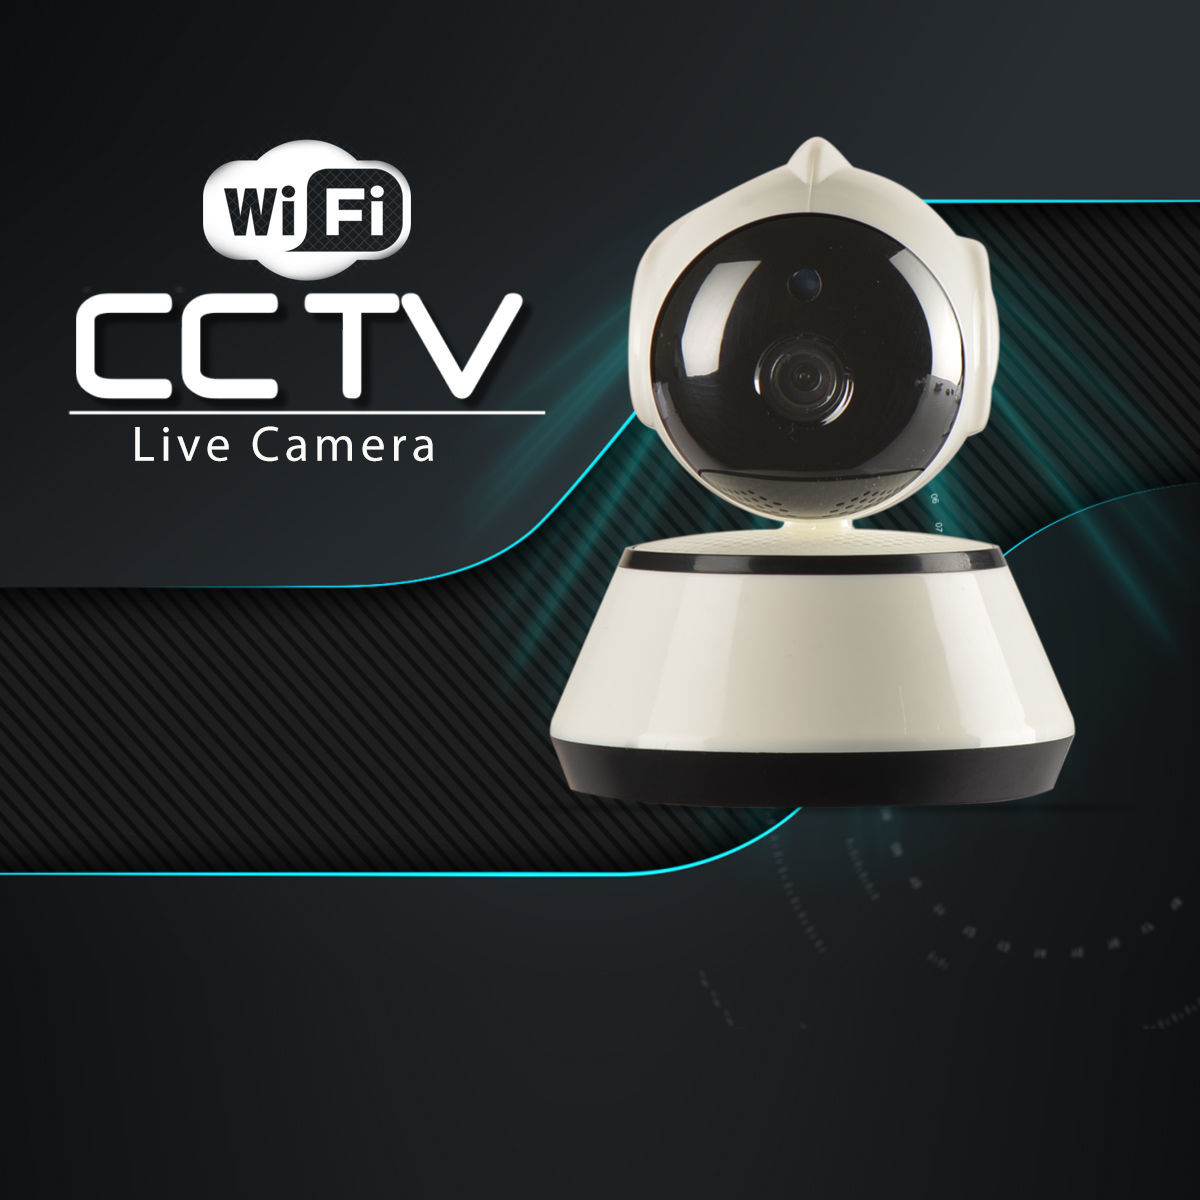 Buy Wi-Fi CCTV Live Camera Online at Best Price in India on Naaptol.com 0acd17fc84